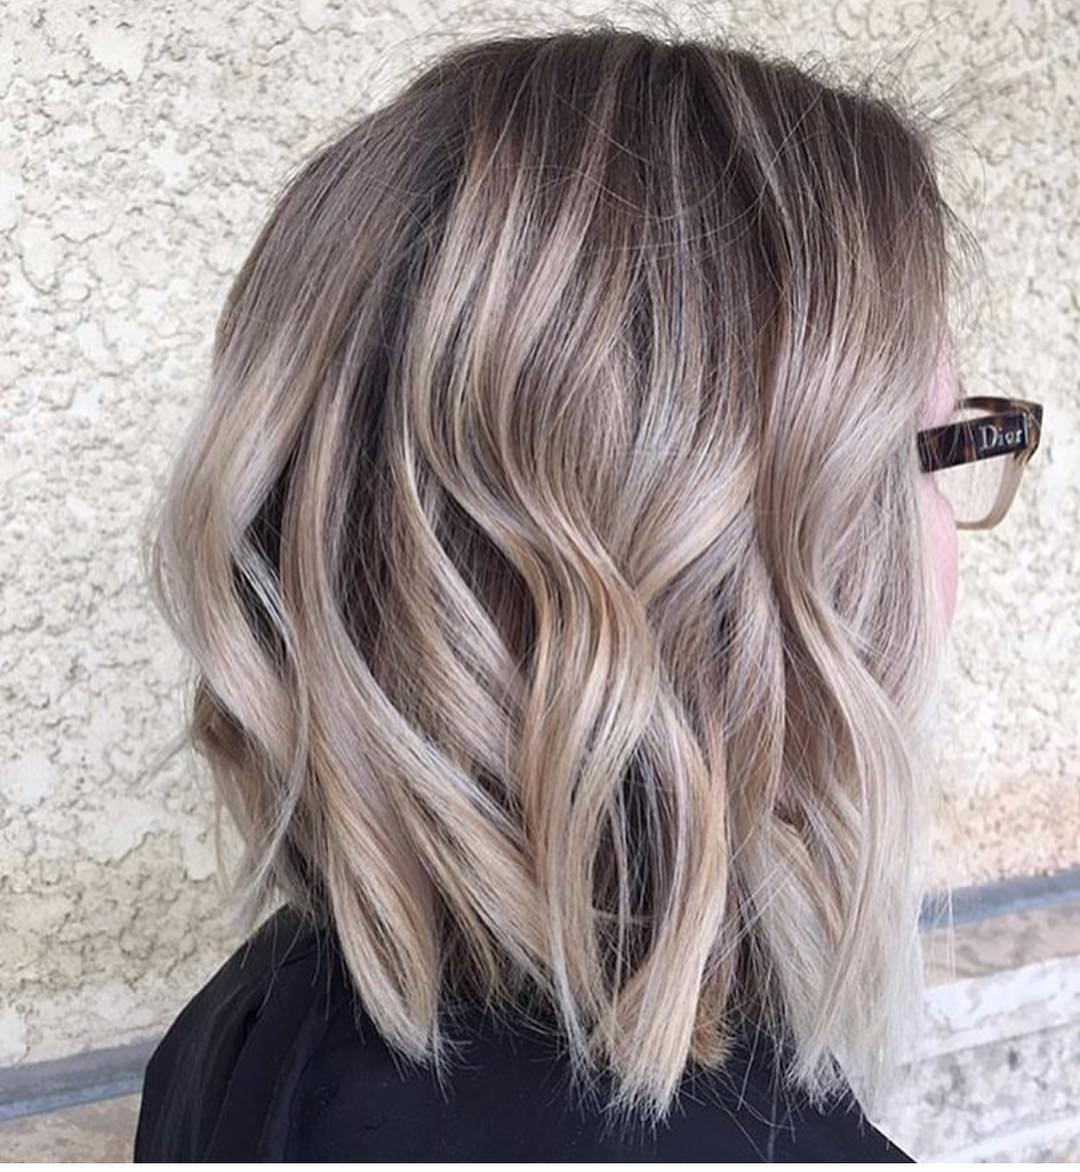 omber hair style balayage ombre hair styles for shoulder length hair 9810